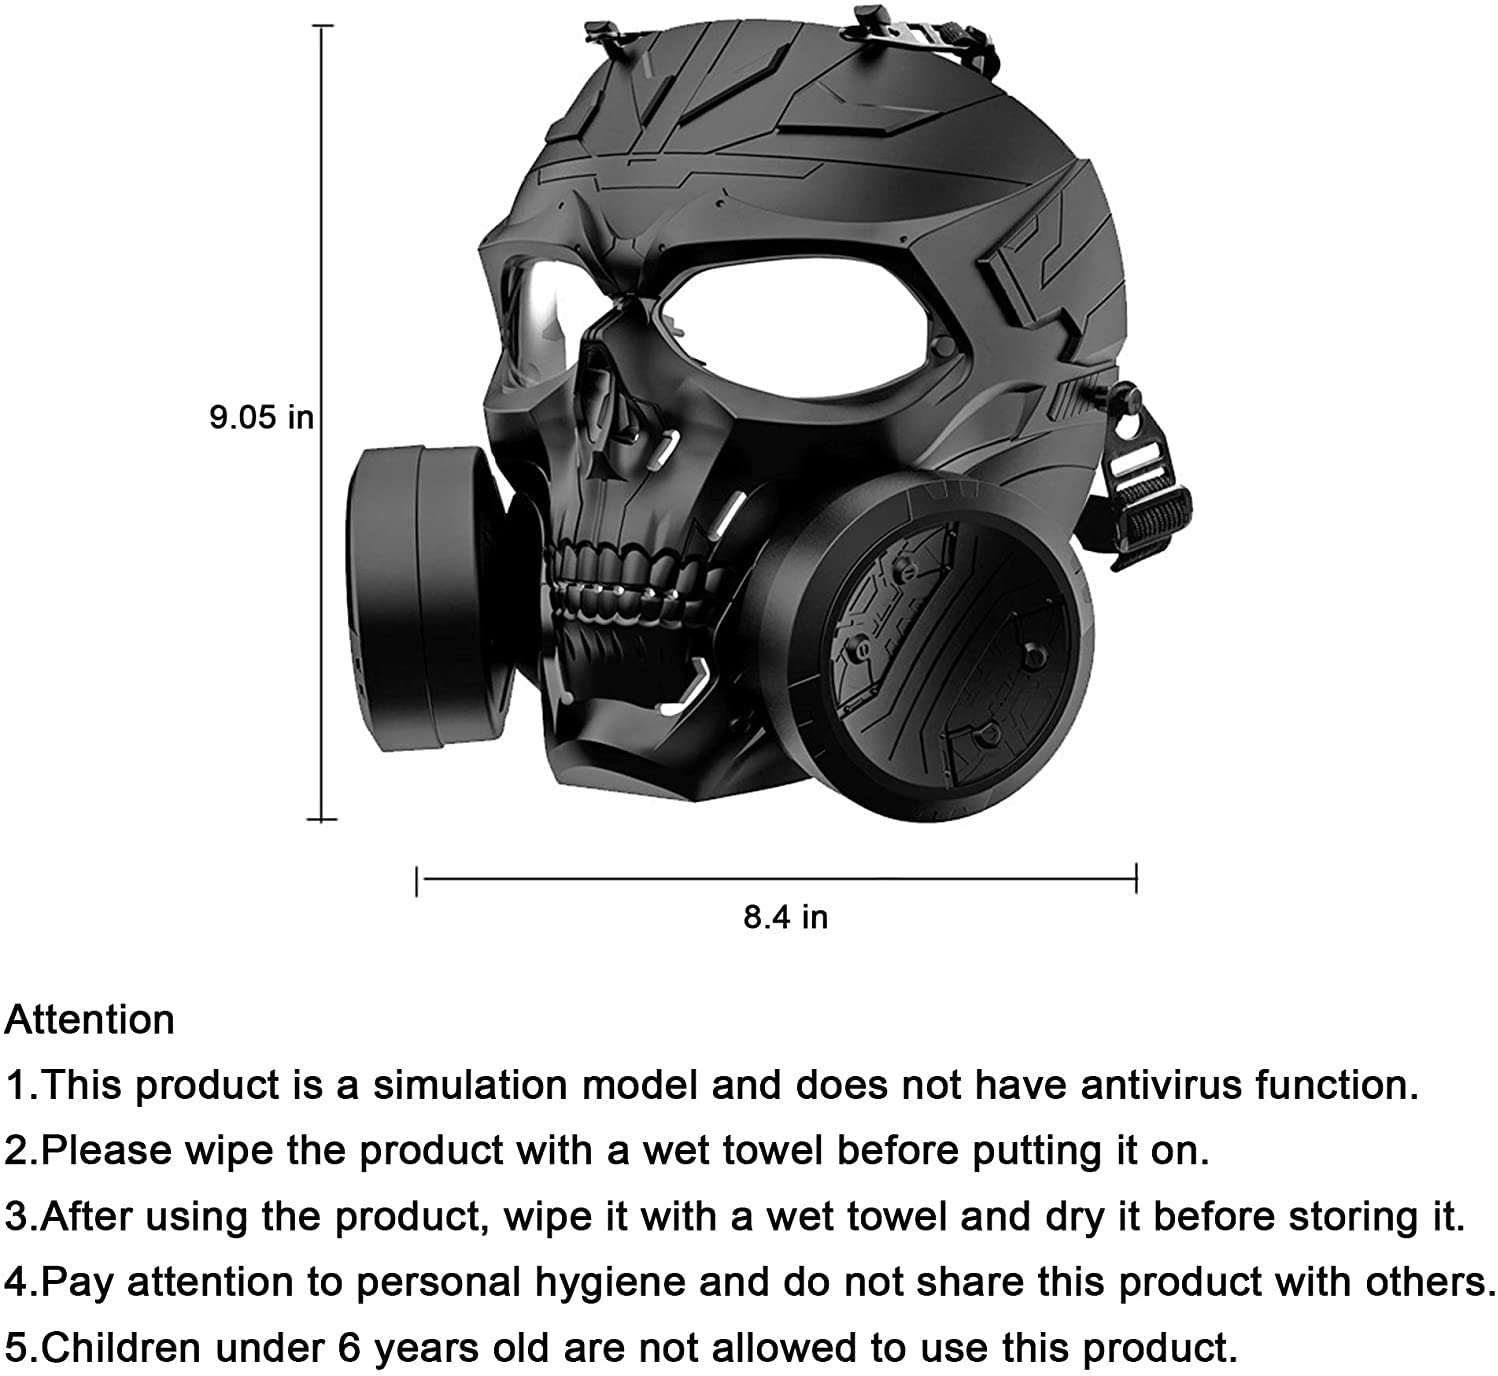 M10 Airsoft Tactical Protective Gas Mask, Toxic Safety Double Exhaust Fan Full Face Protection Dummy Game Mask Adjustable Strap for BB Gun Cosplay Halloween Masquerade Costume, No Anti-Gas Function